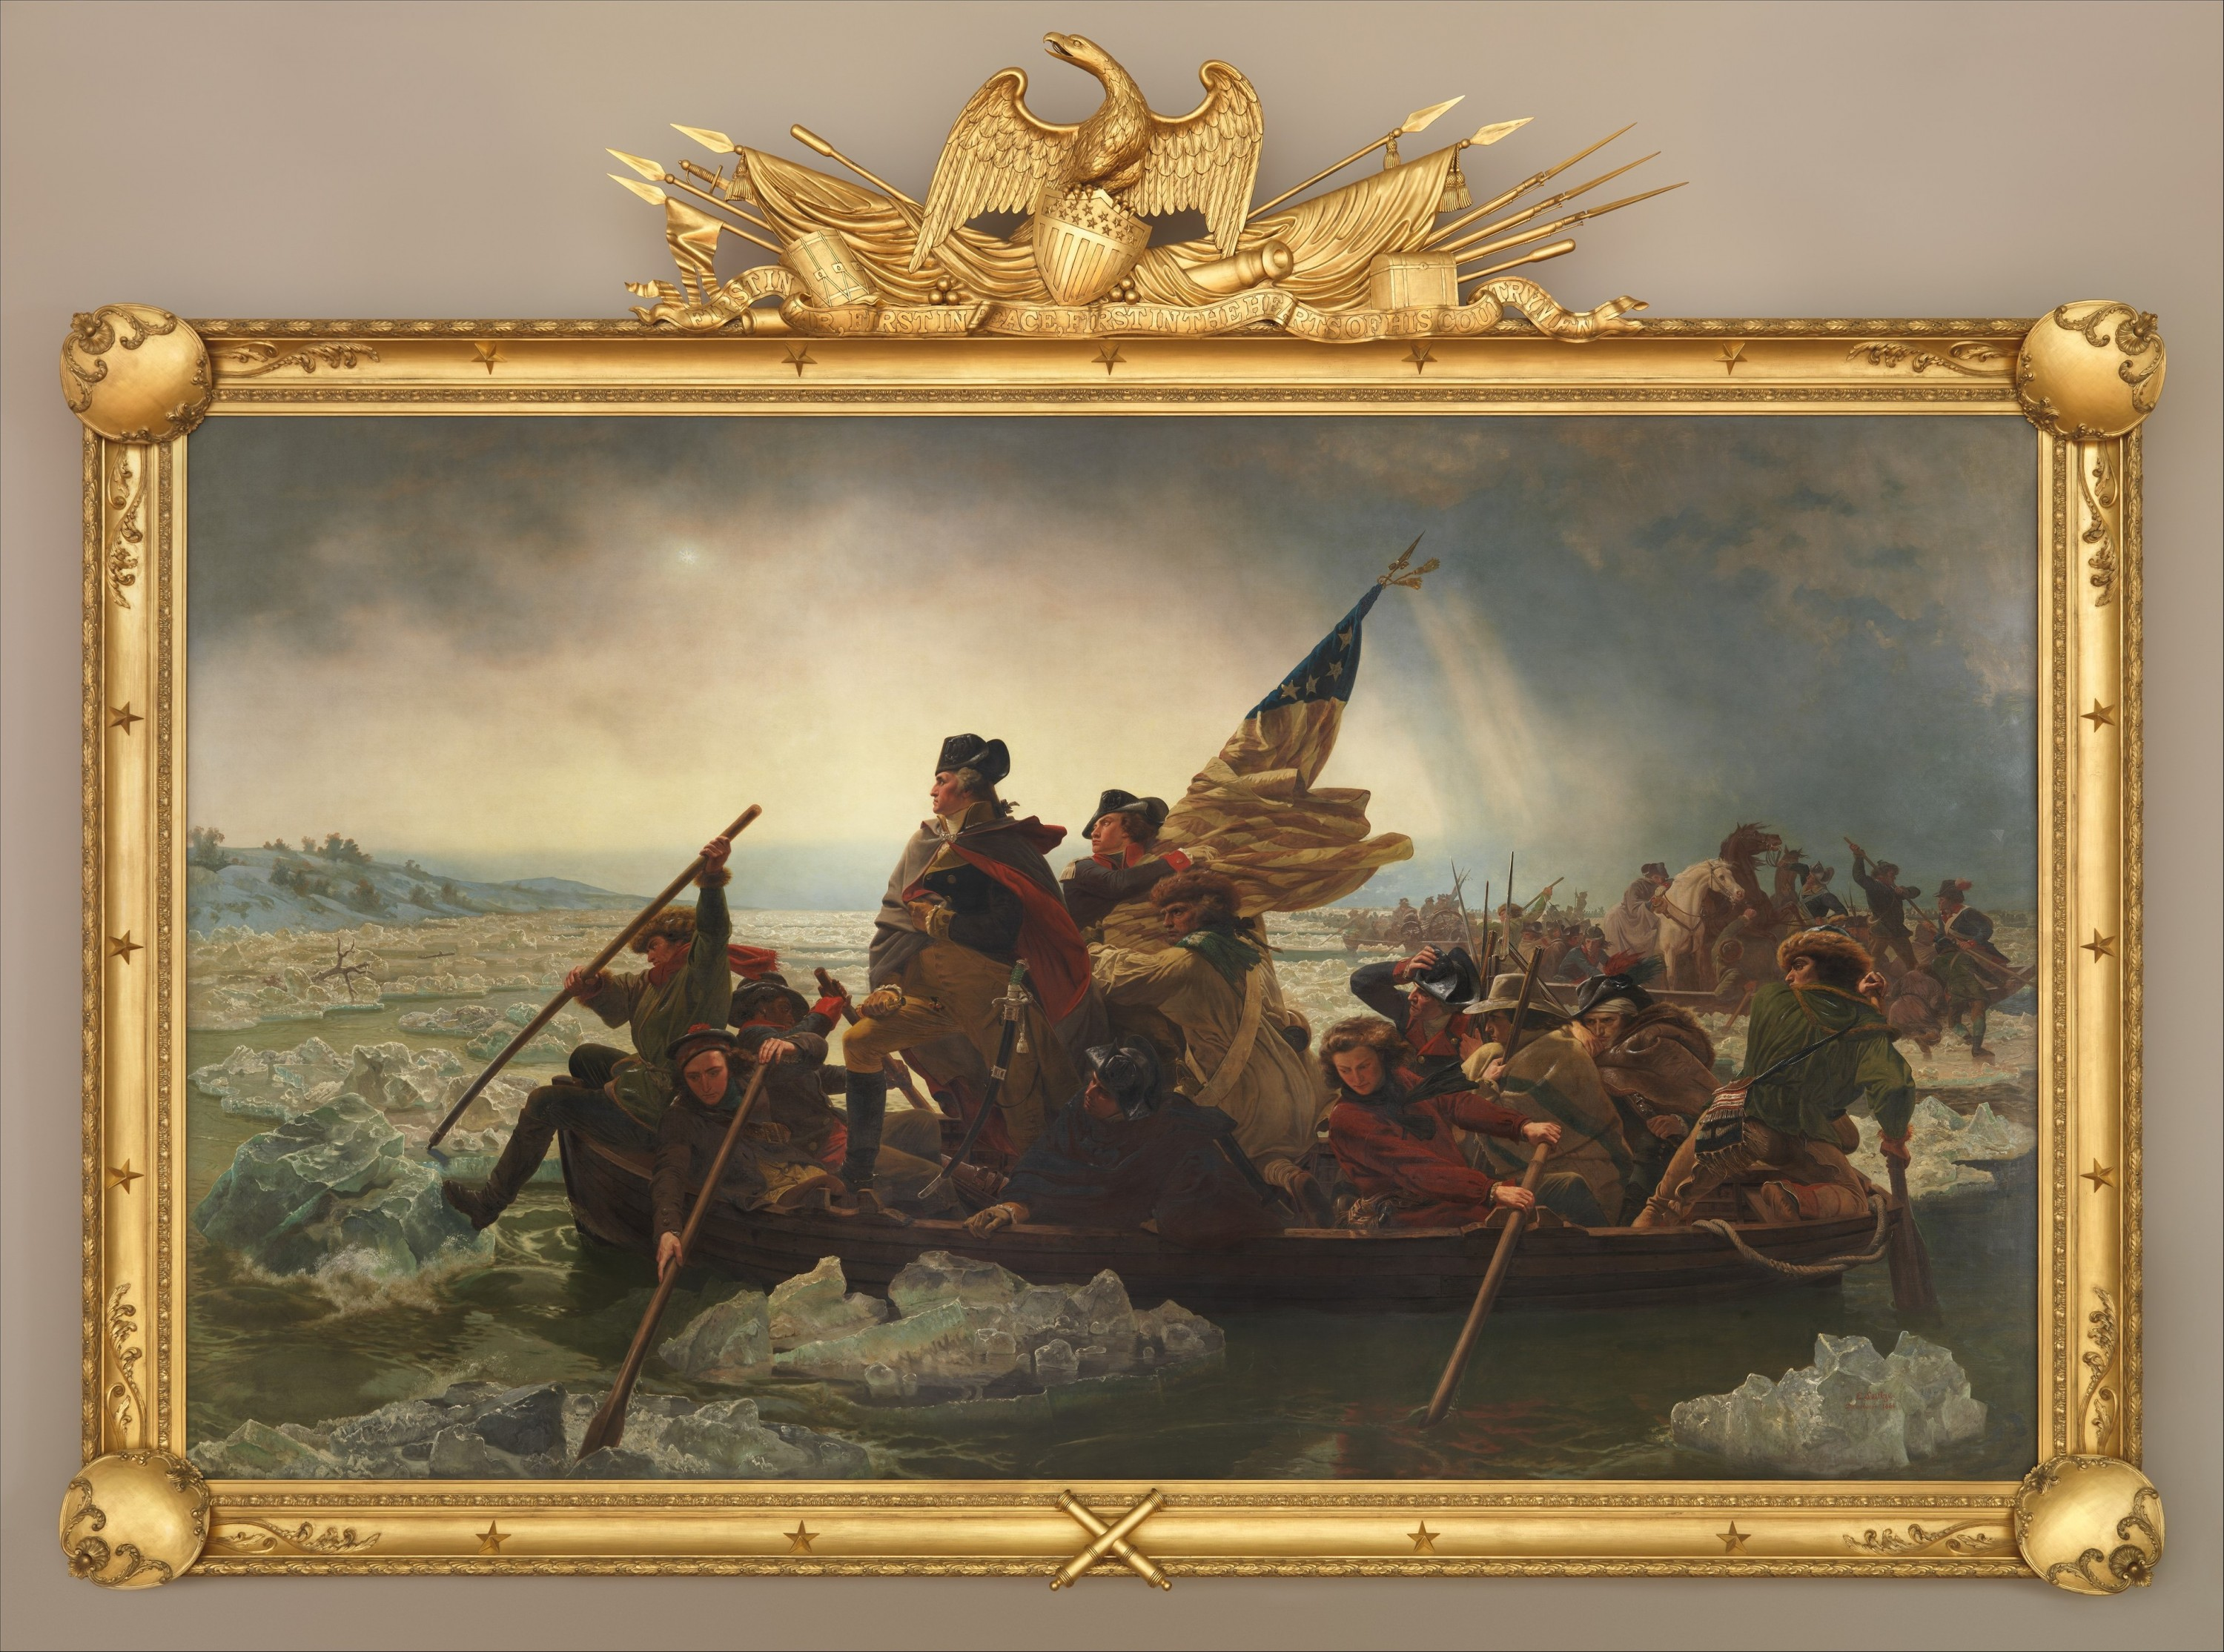 Washington's Crossing of the Delaware River, Emanuel Leutze, 1851. (Metropolitan Museum of Art)